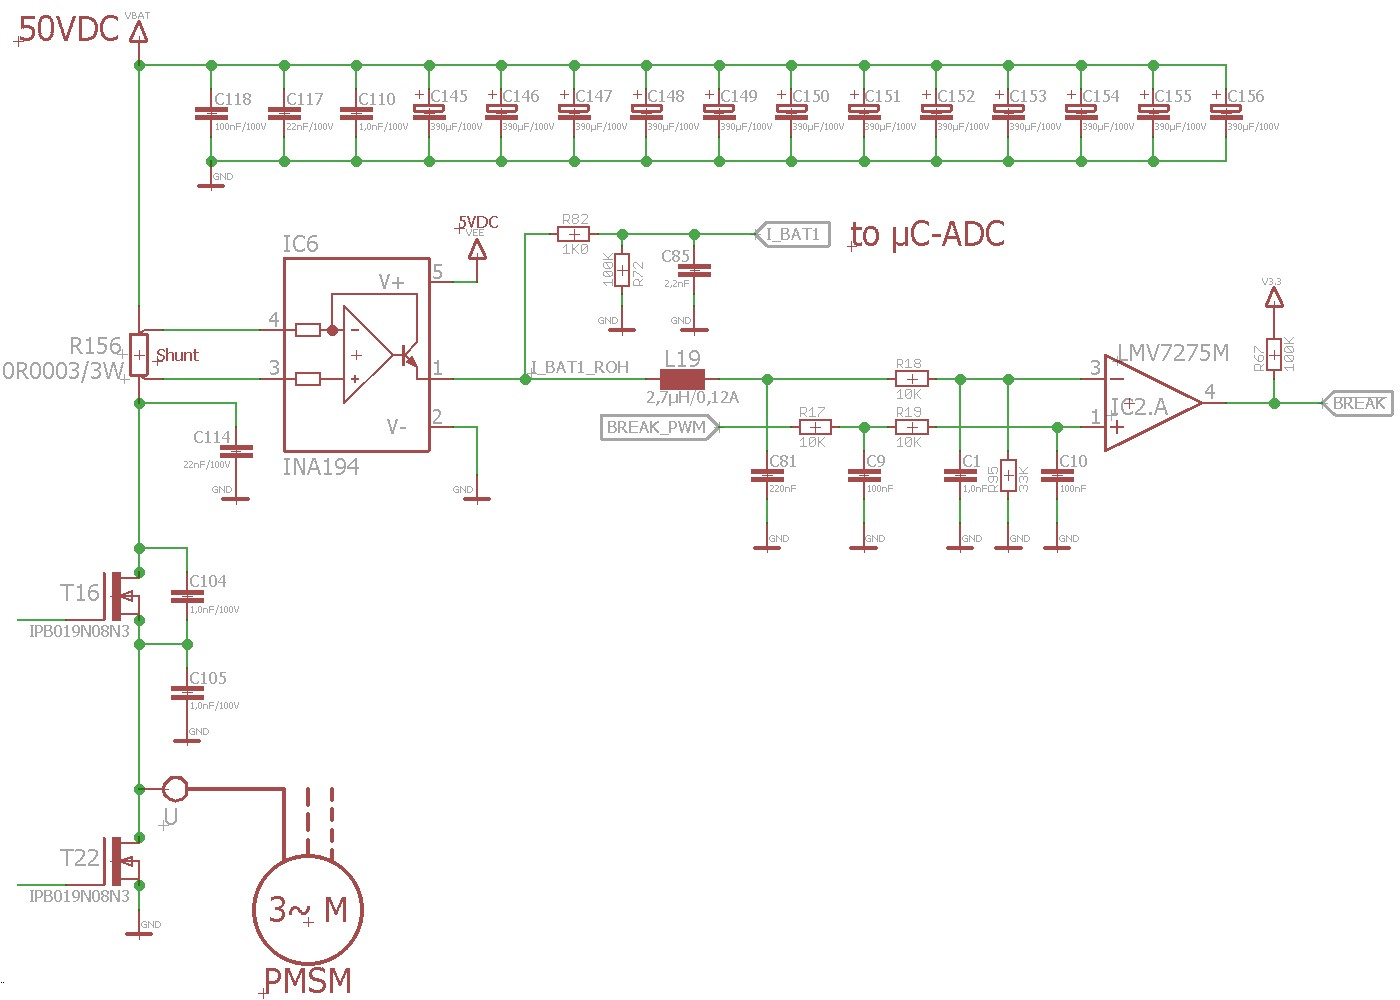 hight resolution of dc busbar is supplied by a 12s li ion battery so dc voltage vbat is 40 50vdc here is a part of a schematic only 1 phase of the motor